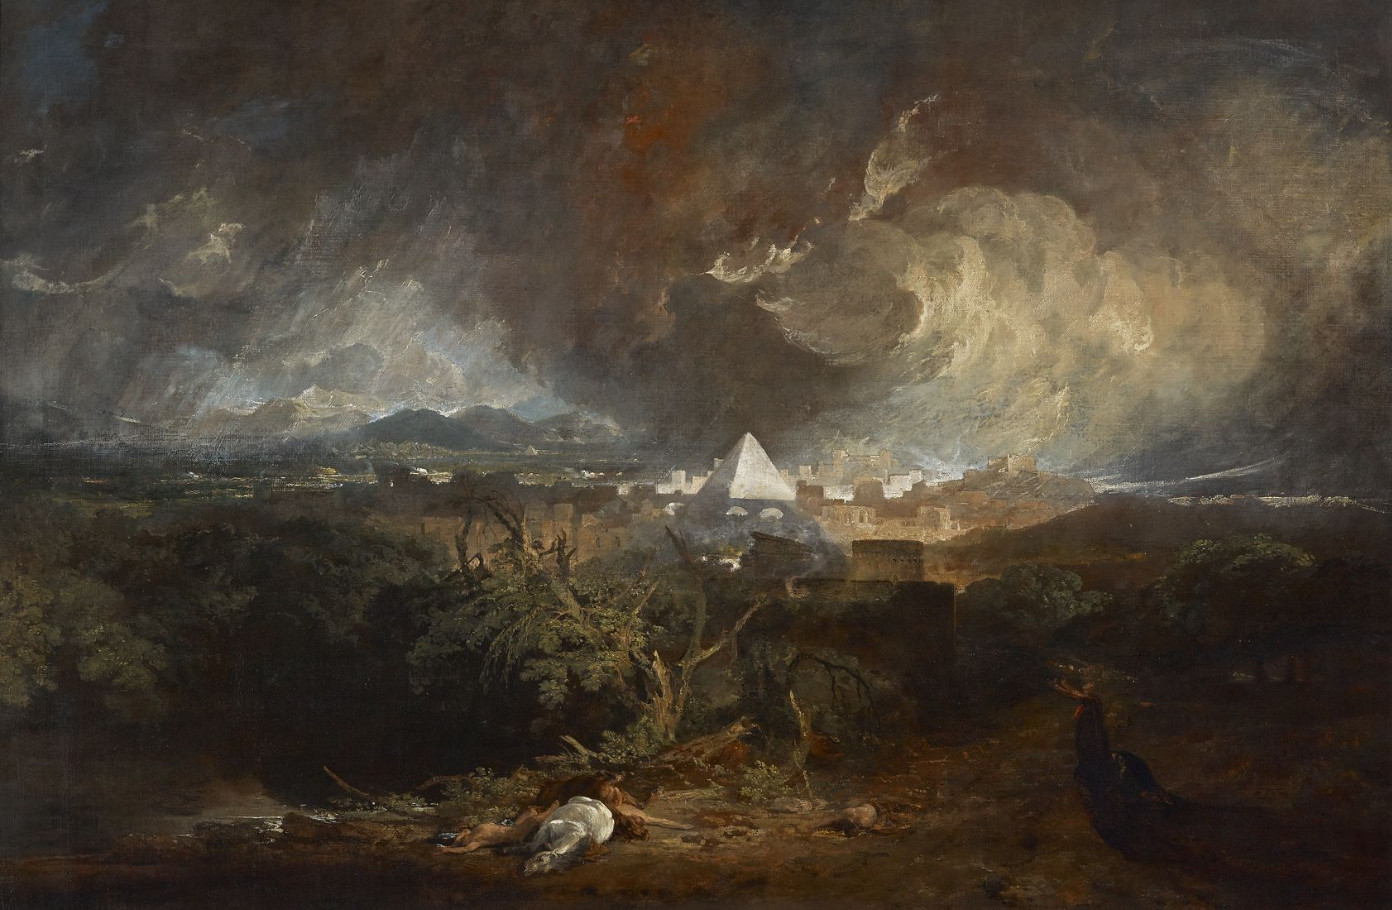 turner_plague5_grt 1799.jpg